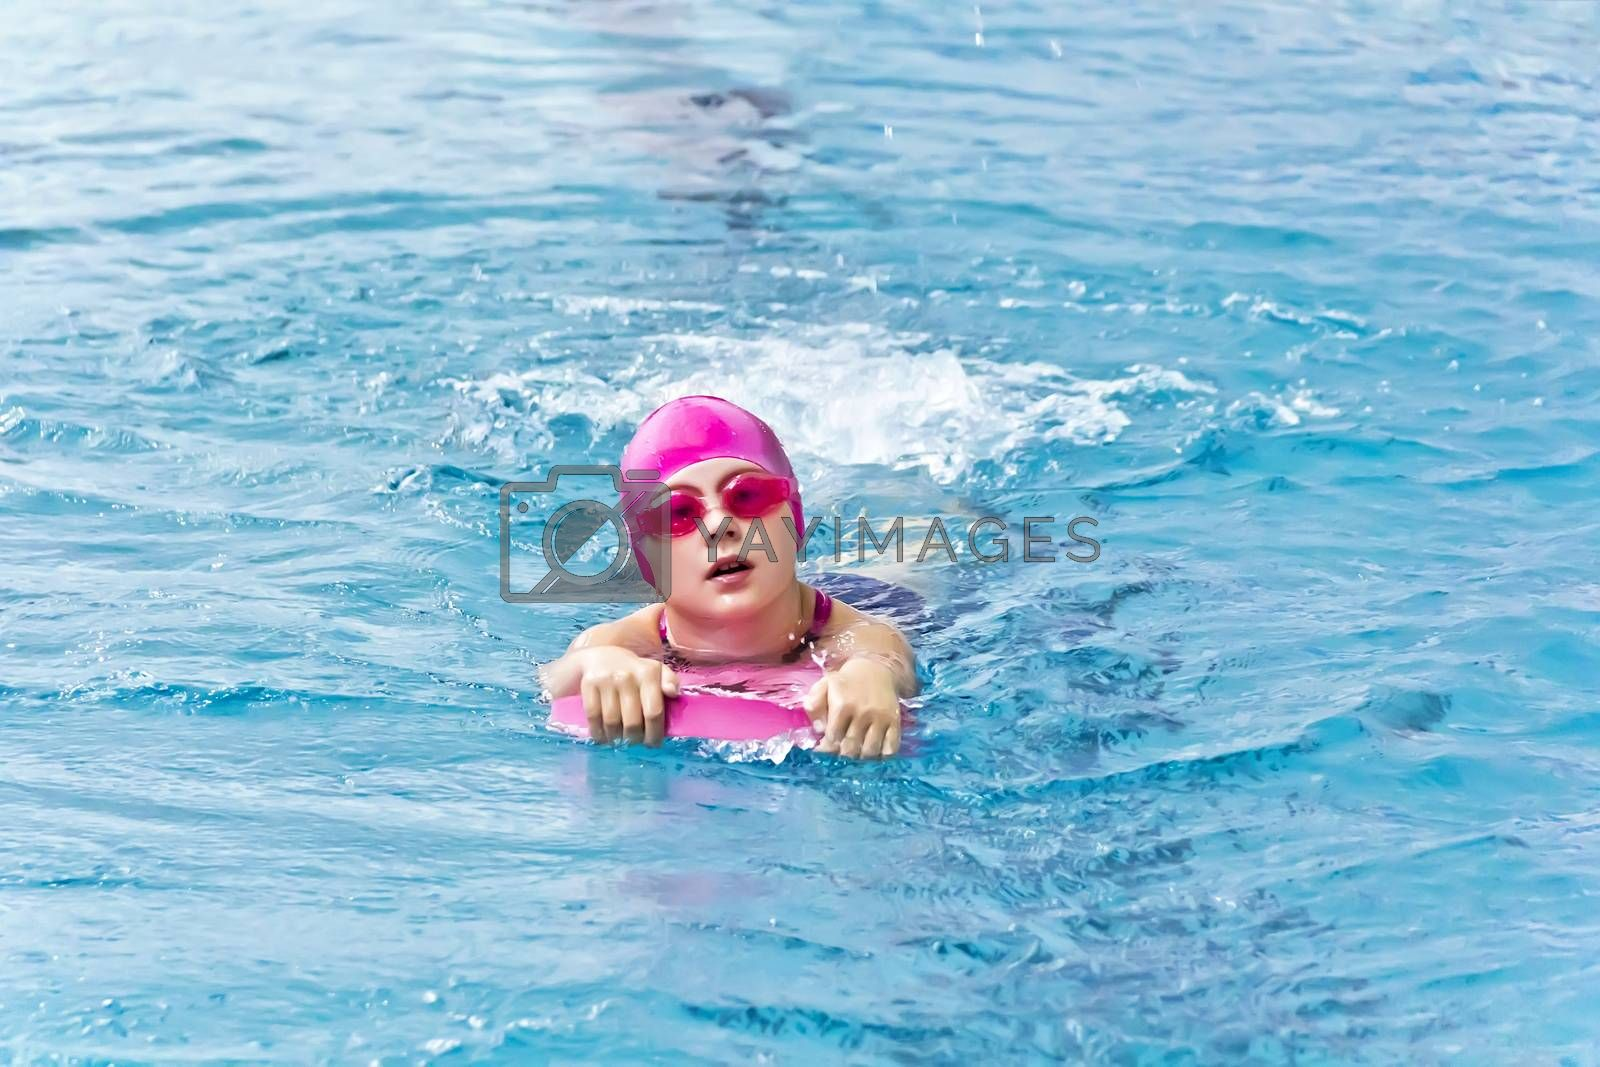 Cute girl with pink rubber hat are swimming in pool